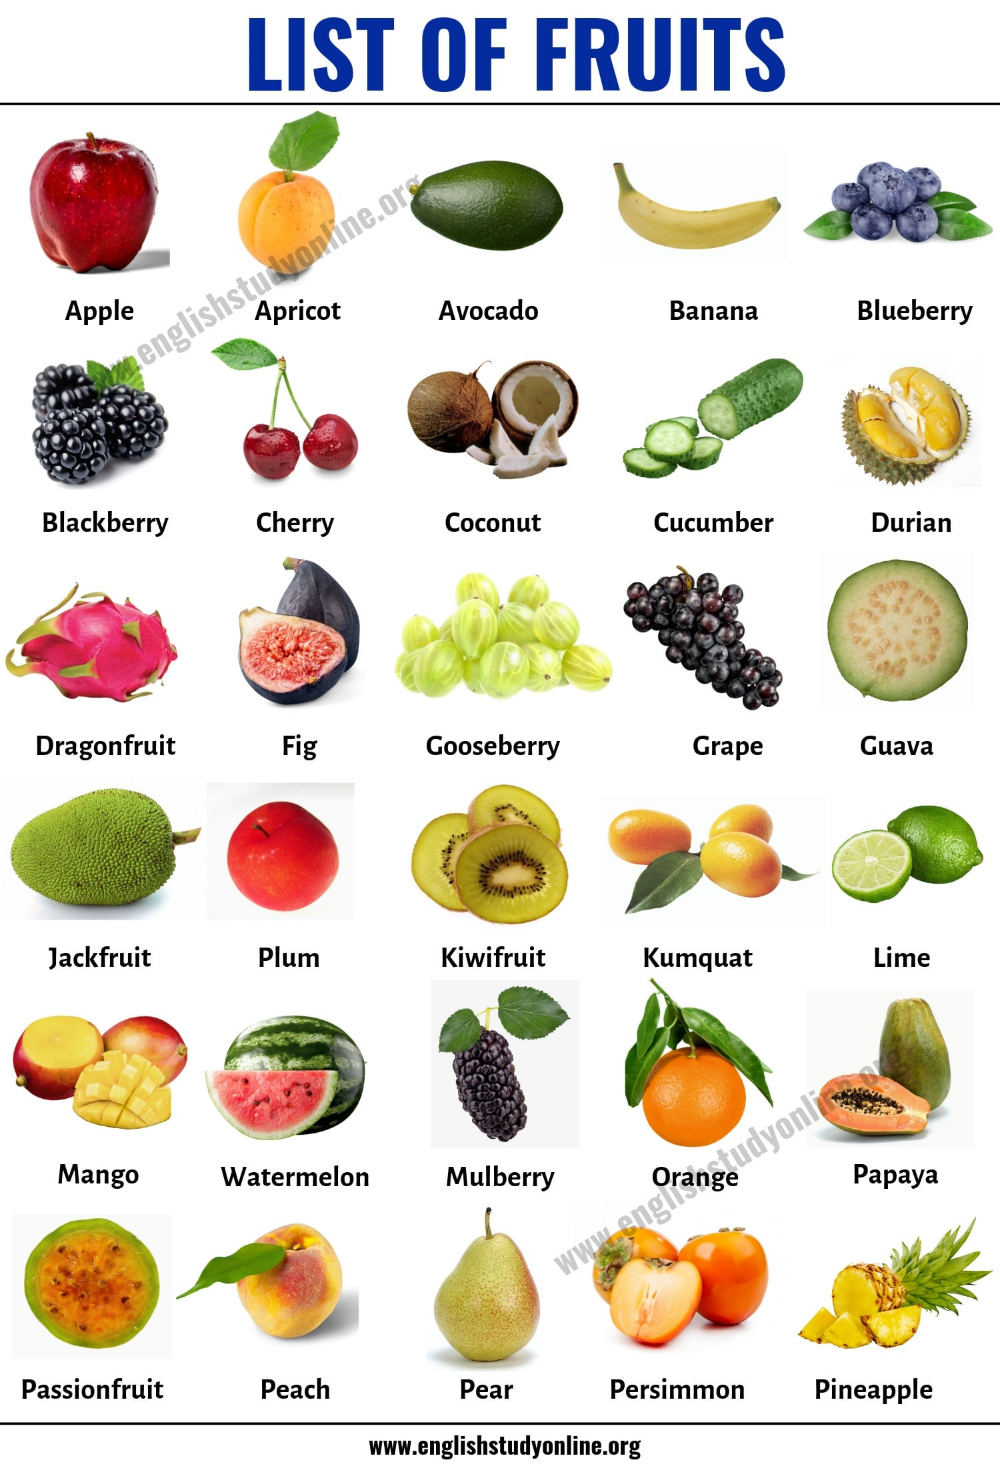 List of Fruits List of 40+ Popular Fruit Names with